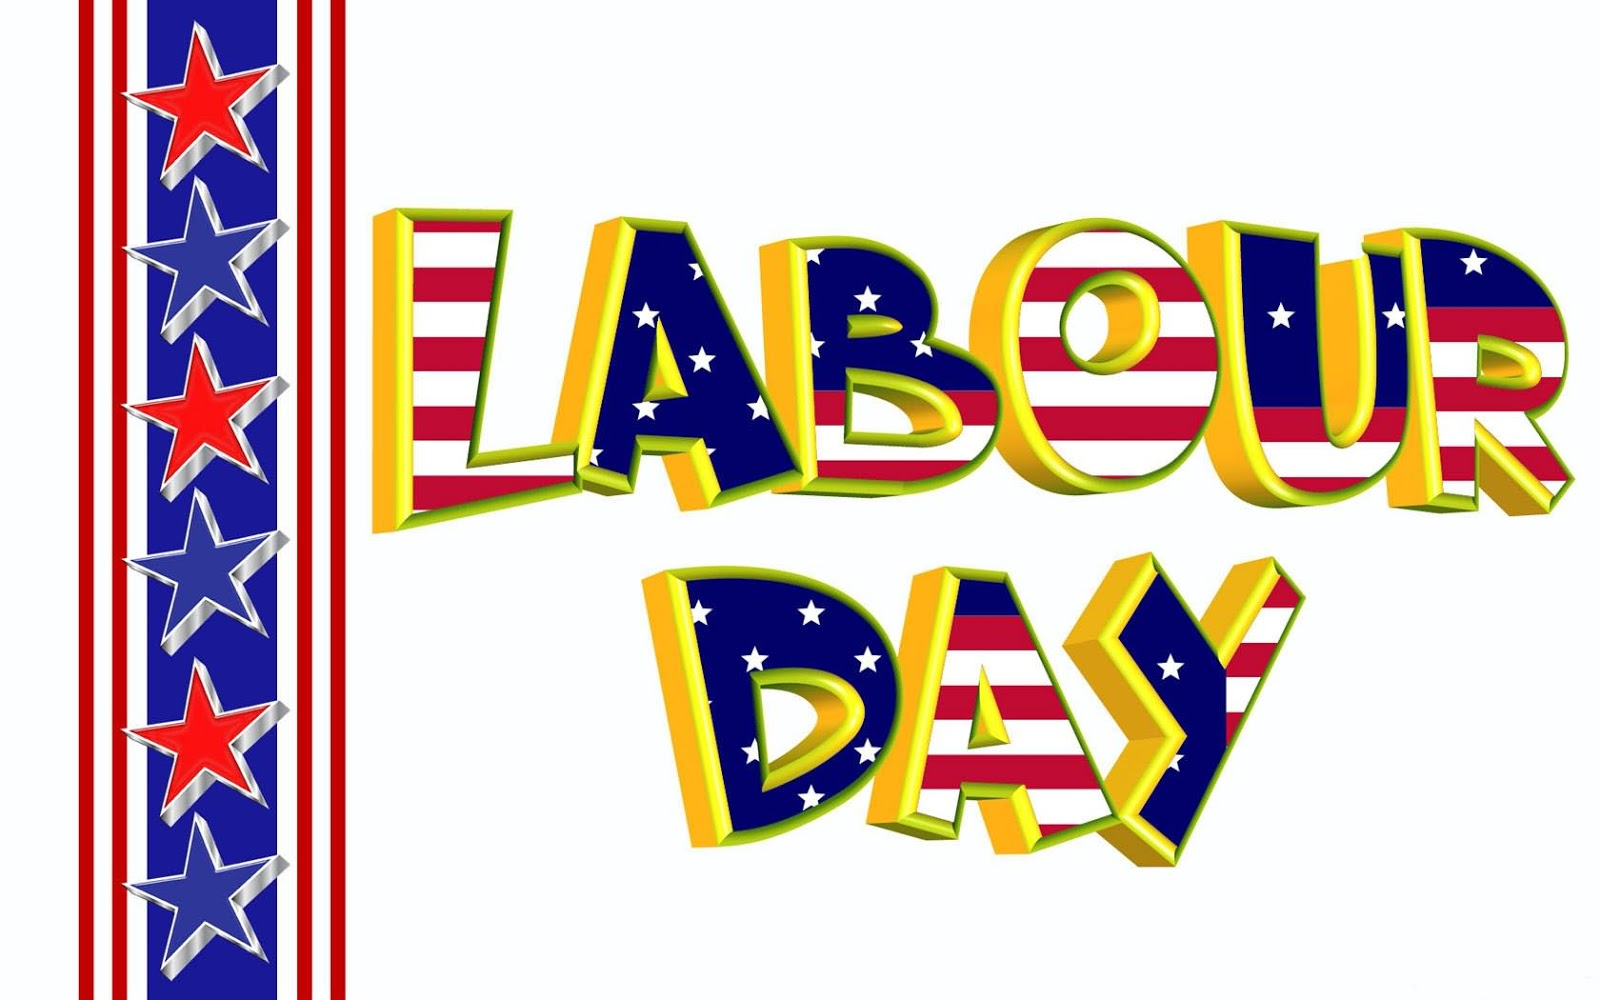 Happy labor day pictures 2016 high definition hd labor day hd pictures labor day kristyandbryce Image collections